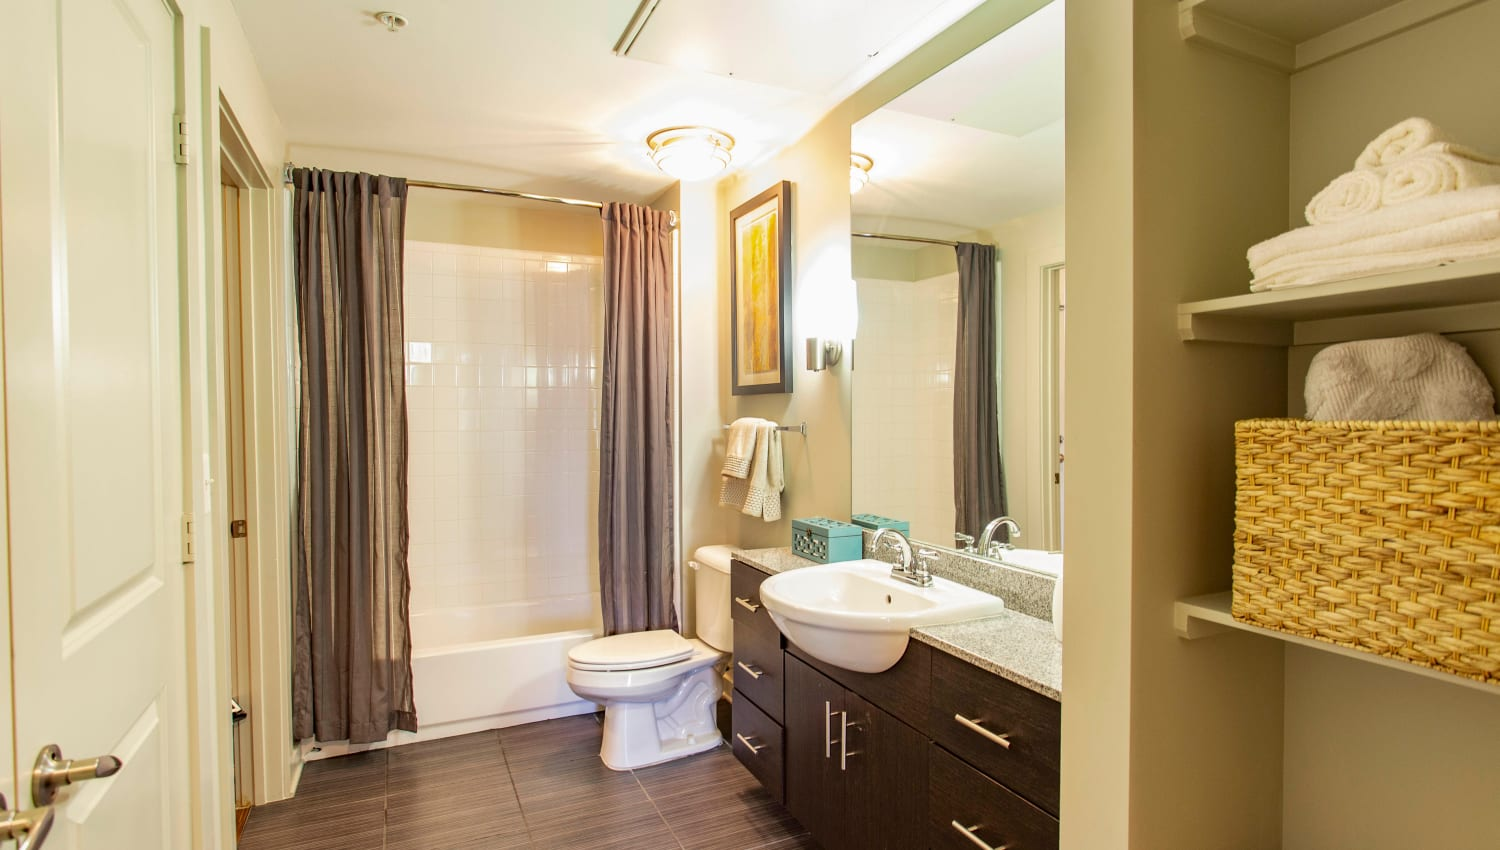 Spacious master bathroom with extra storage and a granite countertop at Olympus Midtown in Nashville, Tennessee